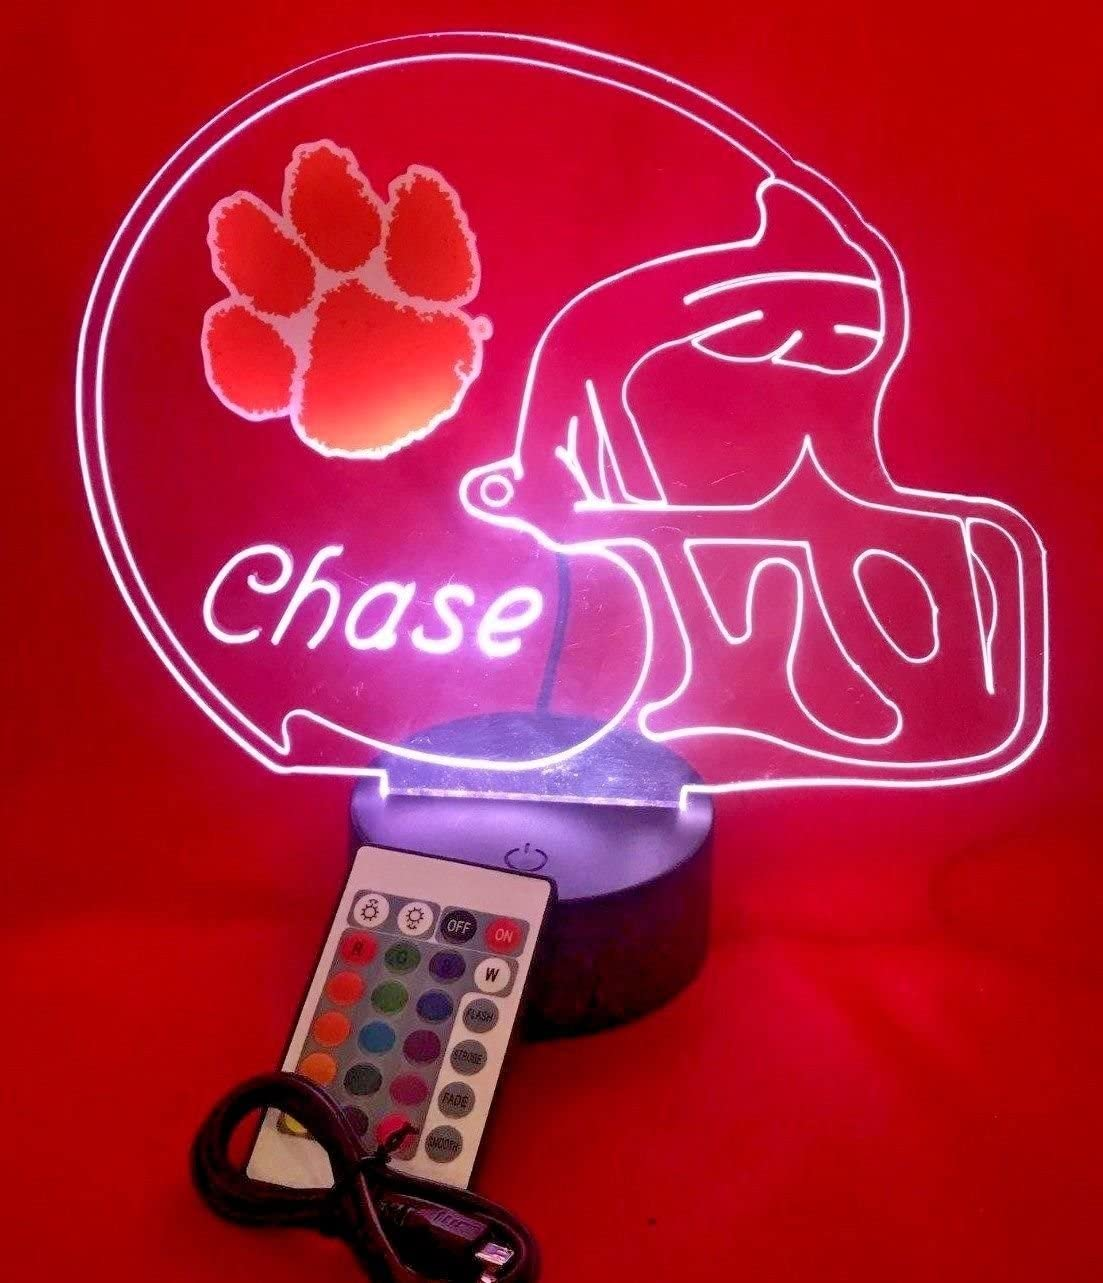 Clemson Tigers NCAA College Football Helmet Light Up Lamp Clemson University Fighting Tigers Table Lamp LED, Our Newest Feature – It s Wow, with Remote 16 Colors, Dimmer, Free Engraving, Great Gift